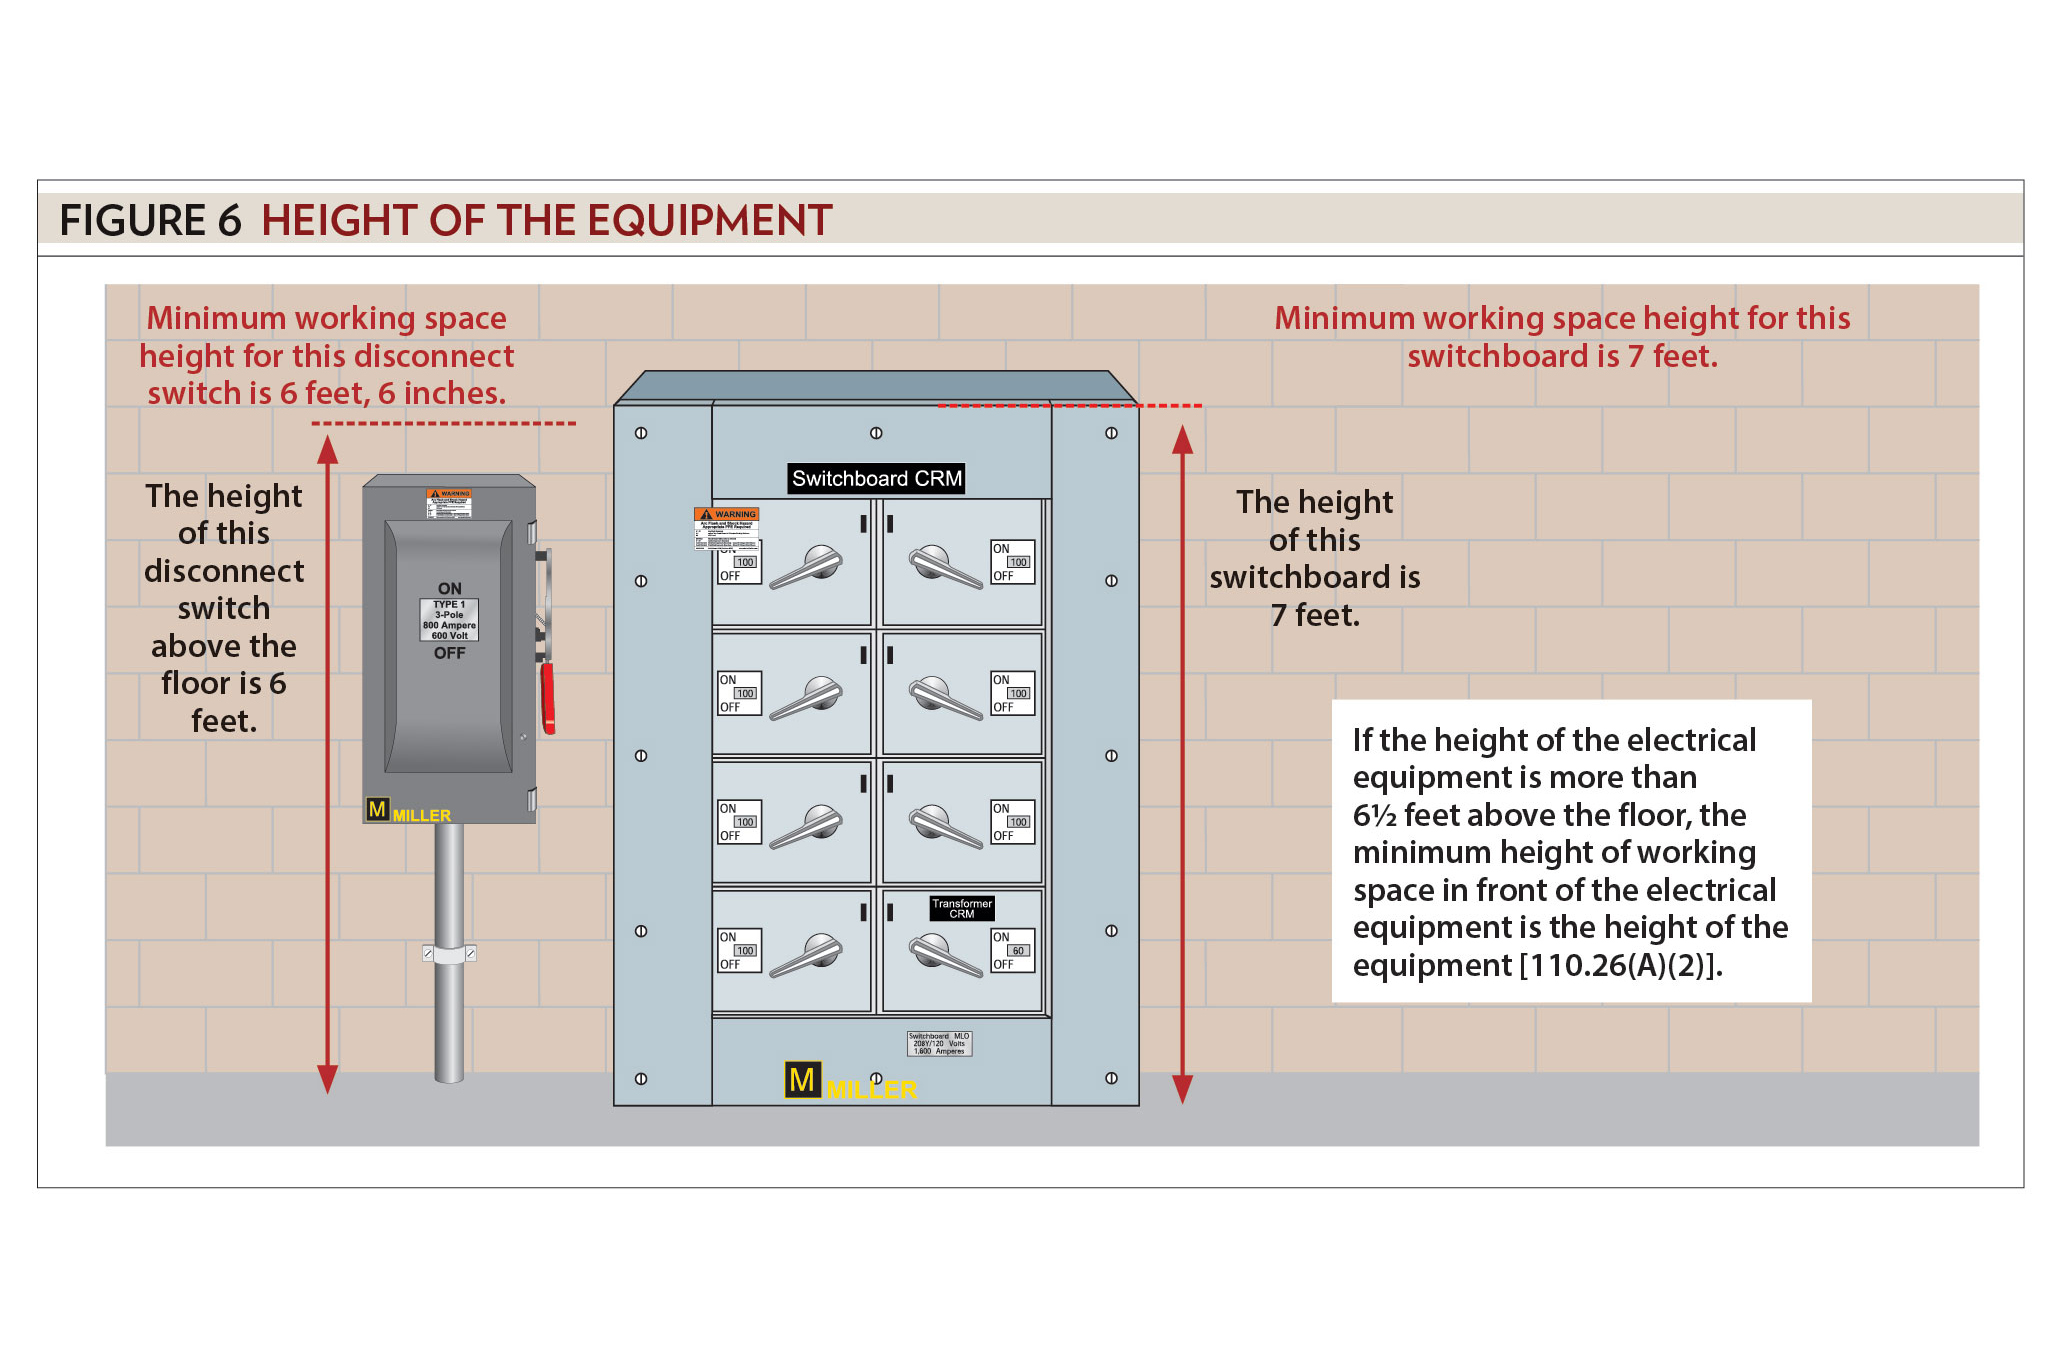 nec clearance requirements for electrical panels  | ecmag.com